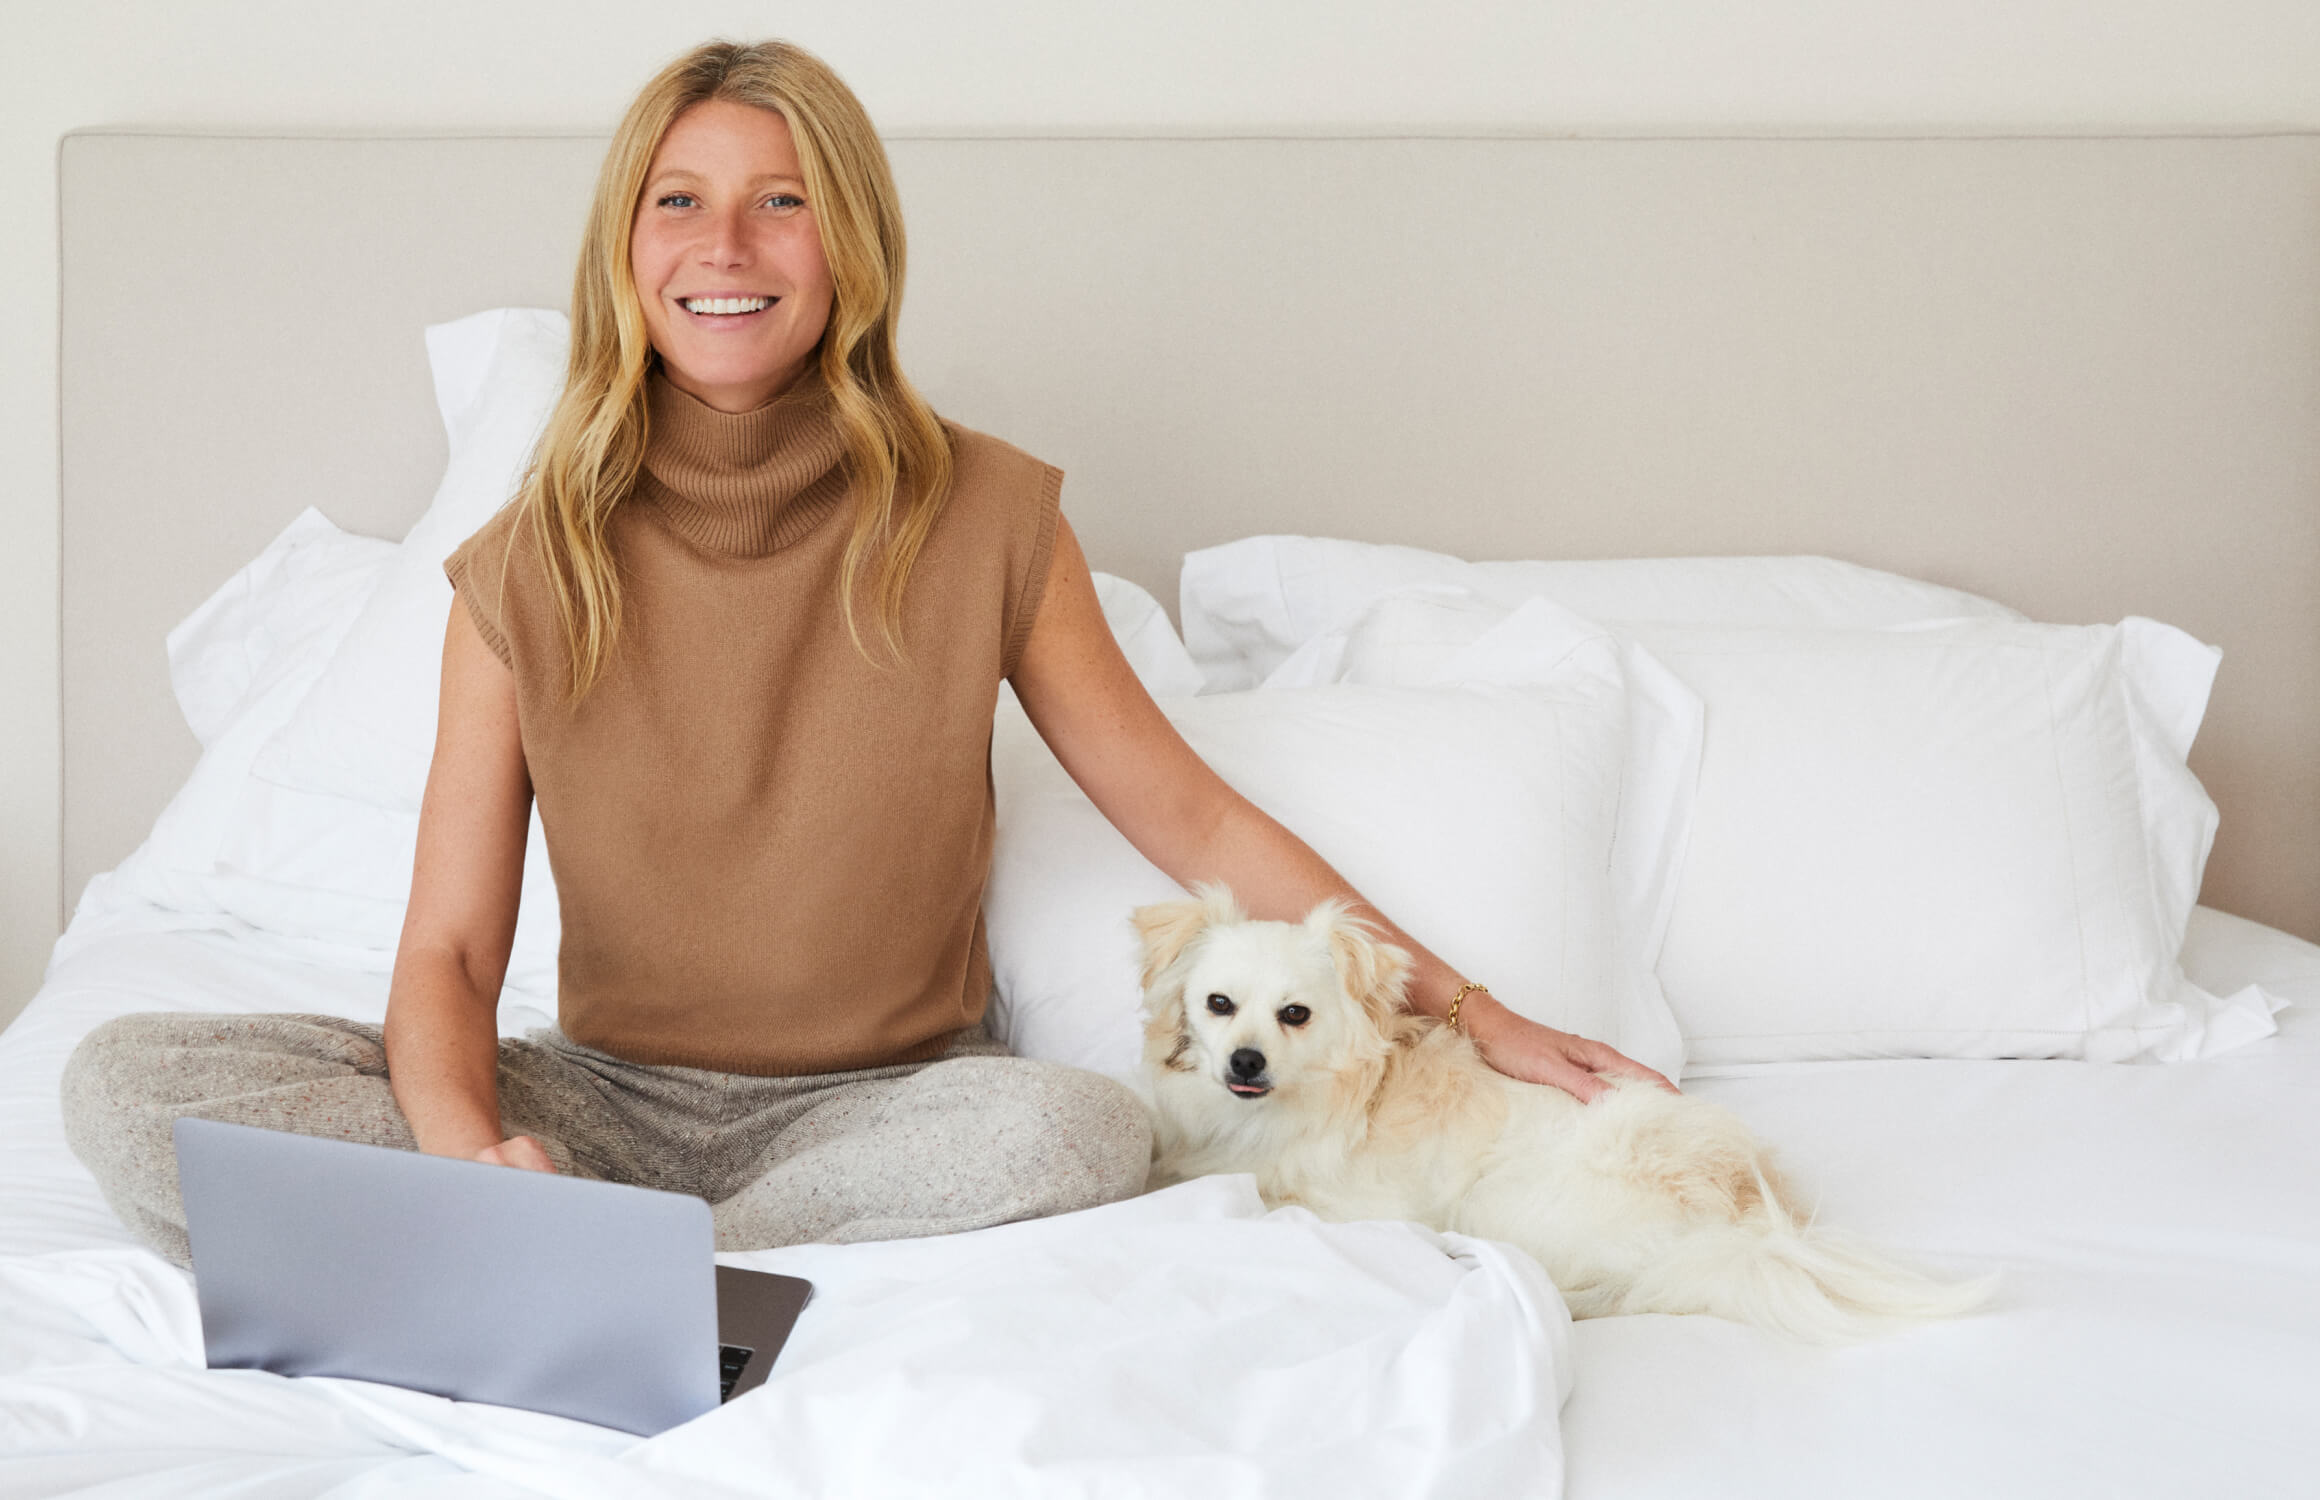 GP on a bed with a dog